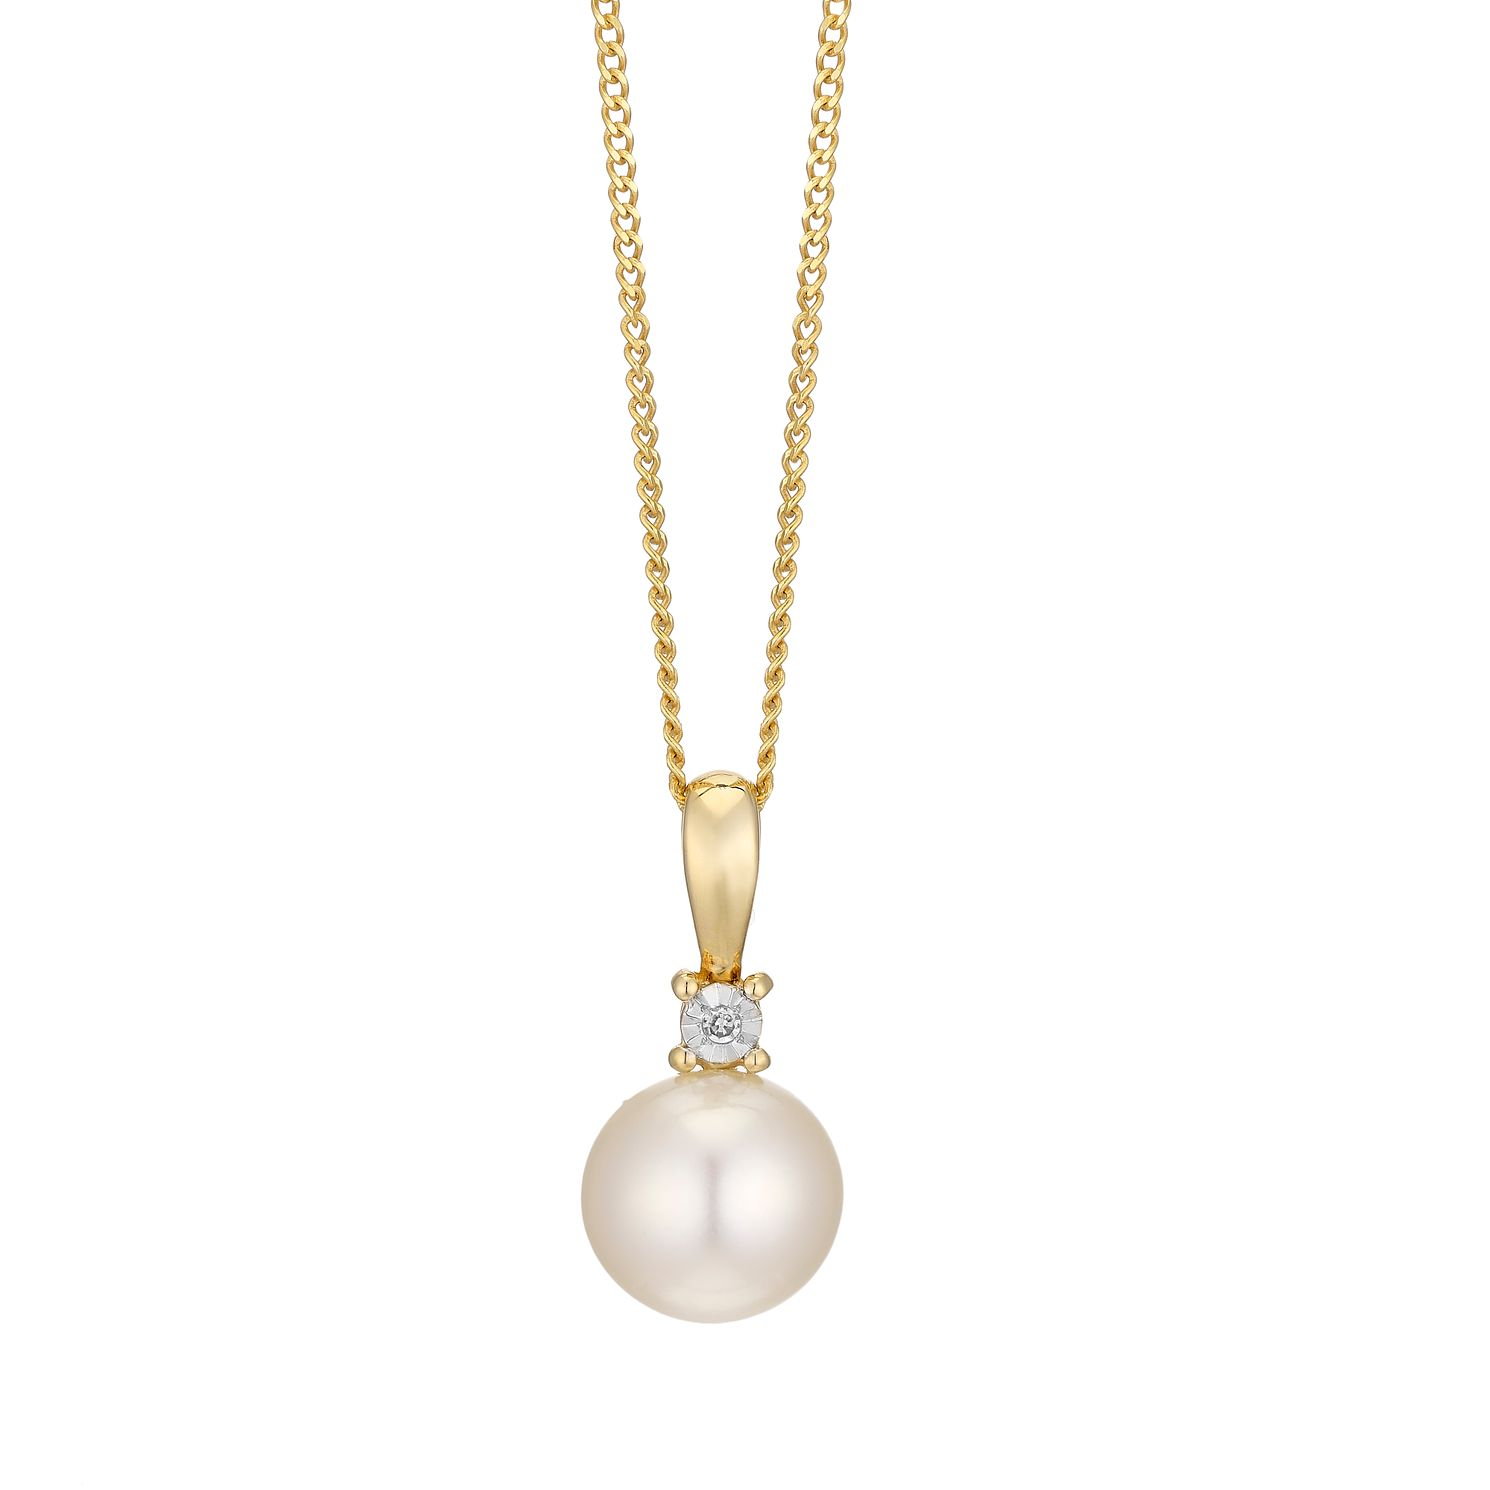 9ct Yellow Gold Cultured Freshwater Pearl & Diamond Pendant - Product number 4297997